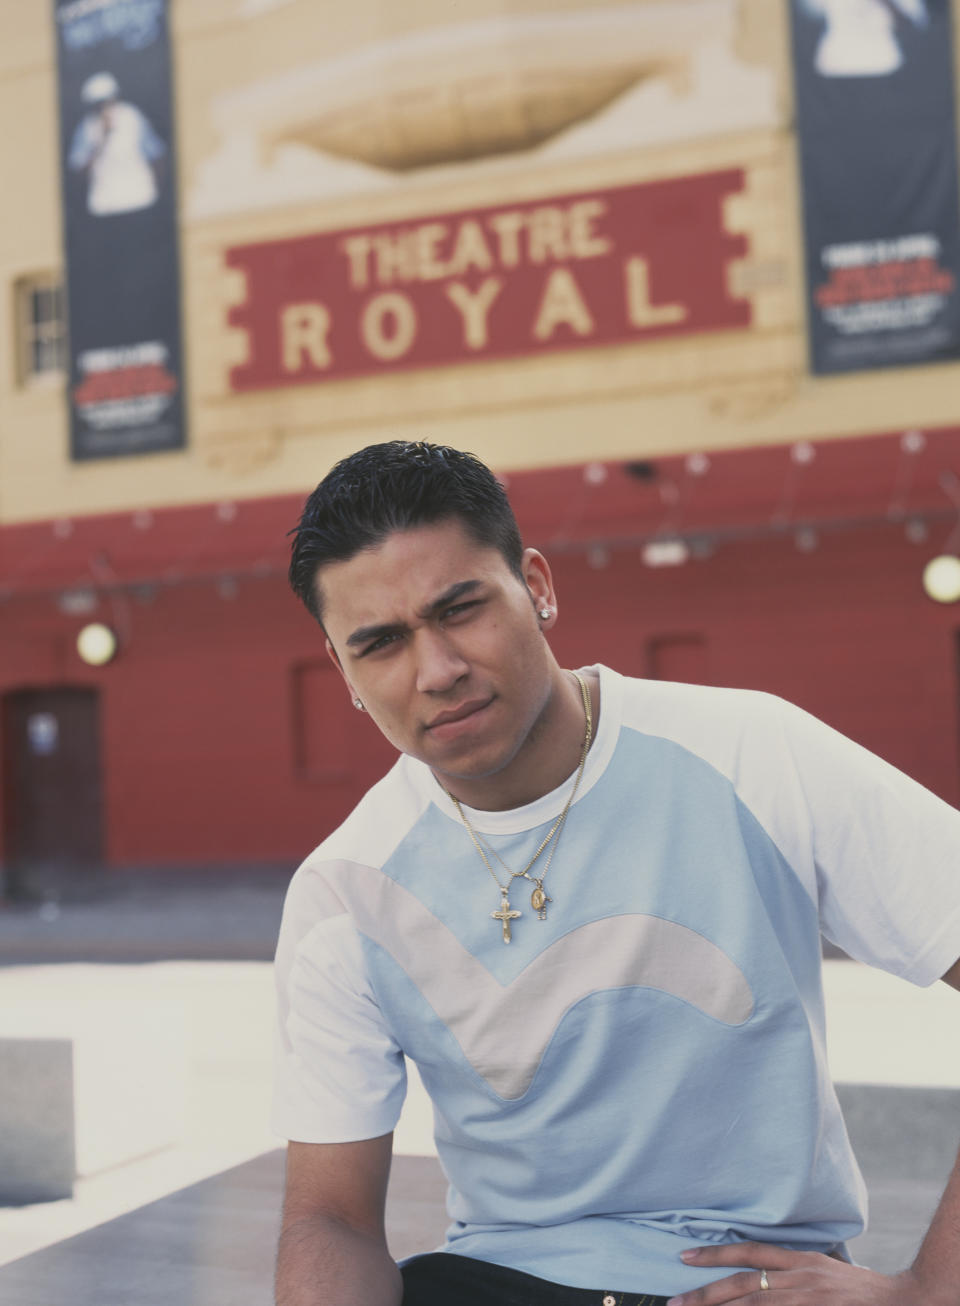 British actor Ricky Norwood, who plays Fatboy in the soap opera 'Eastenders', outside the Theatre Royal Stratford East in London, circa 2010. (Photo by Tim Roney/Getty Images)